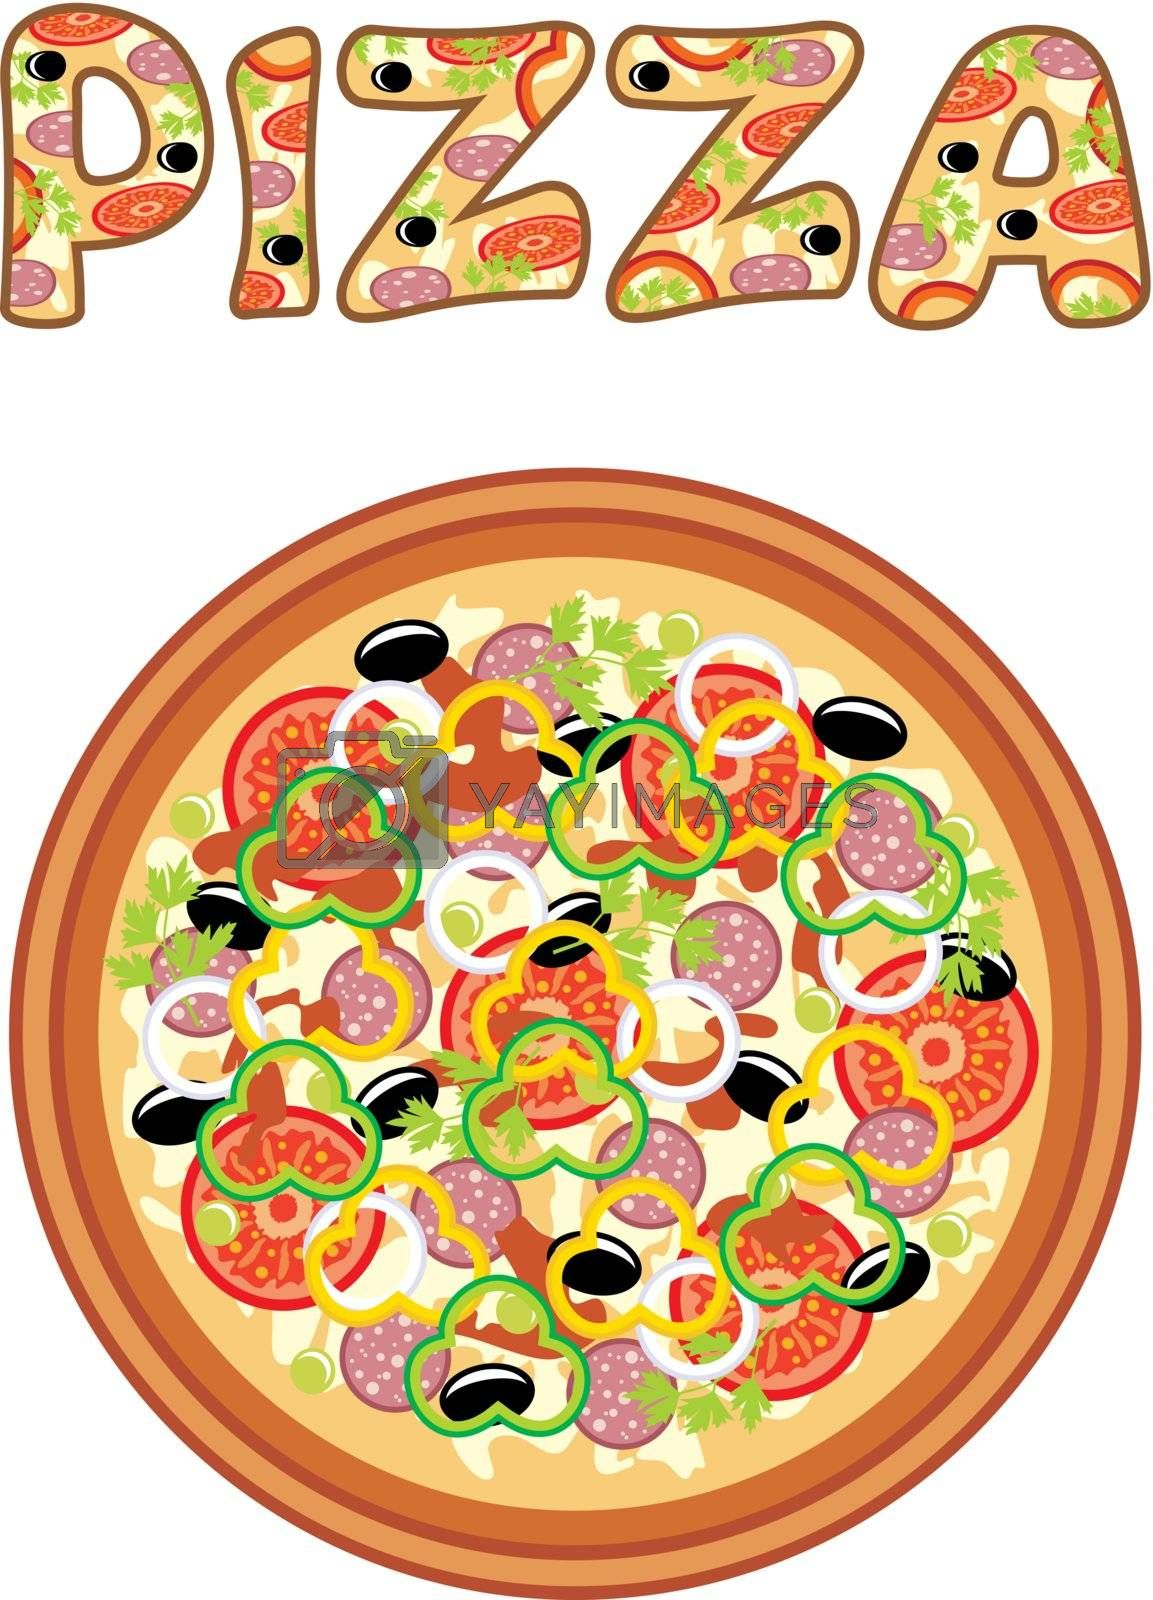 Image set of pizza on a white background.